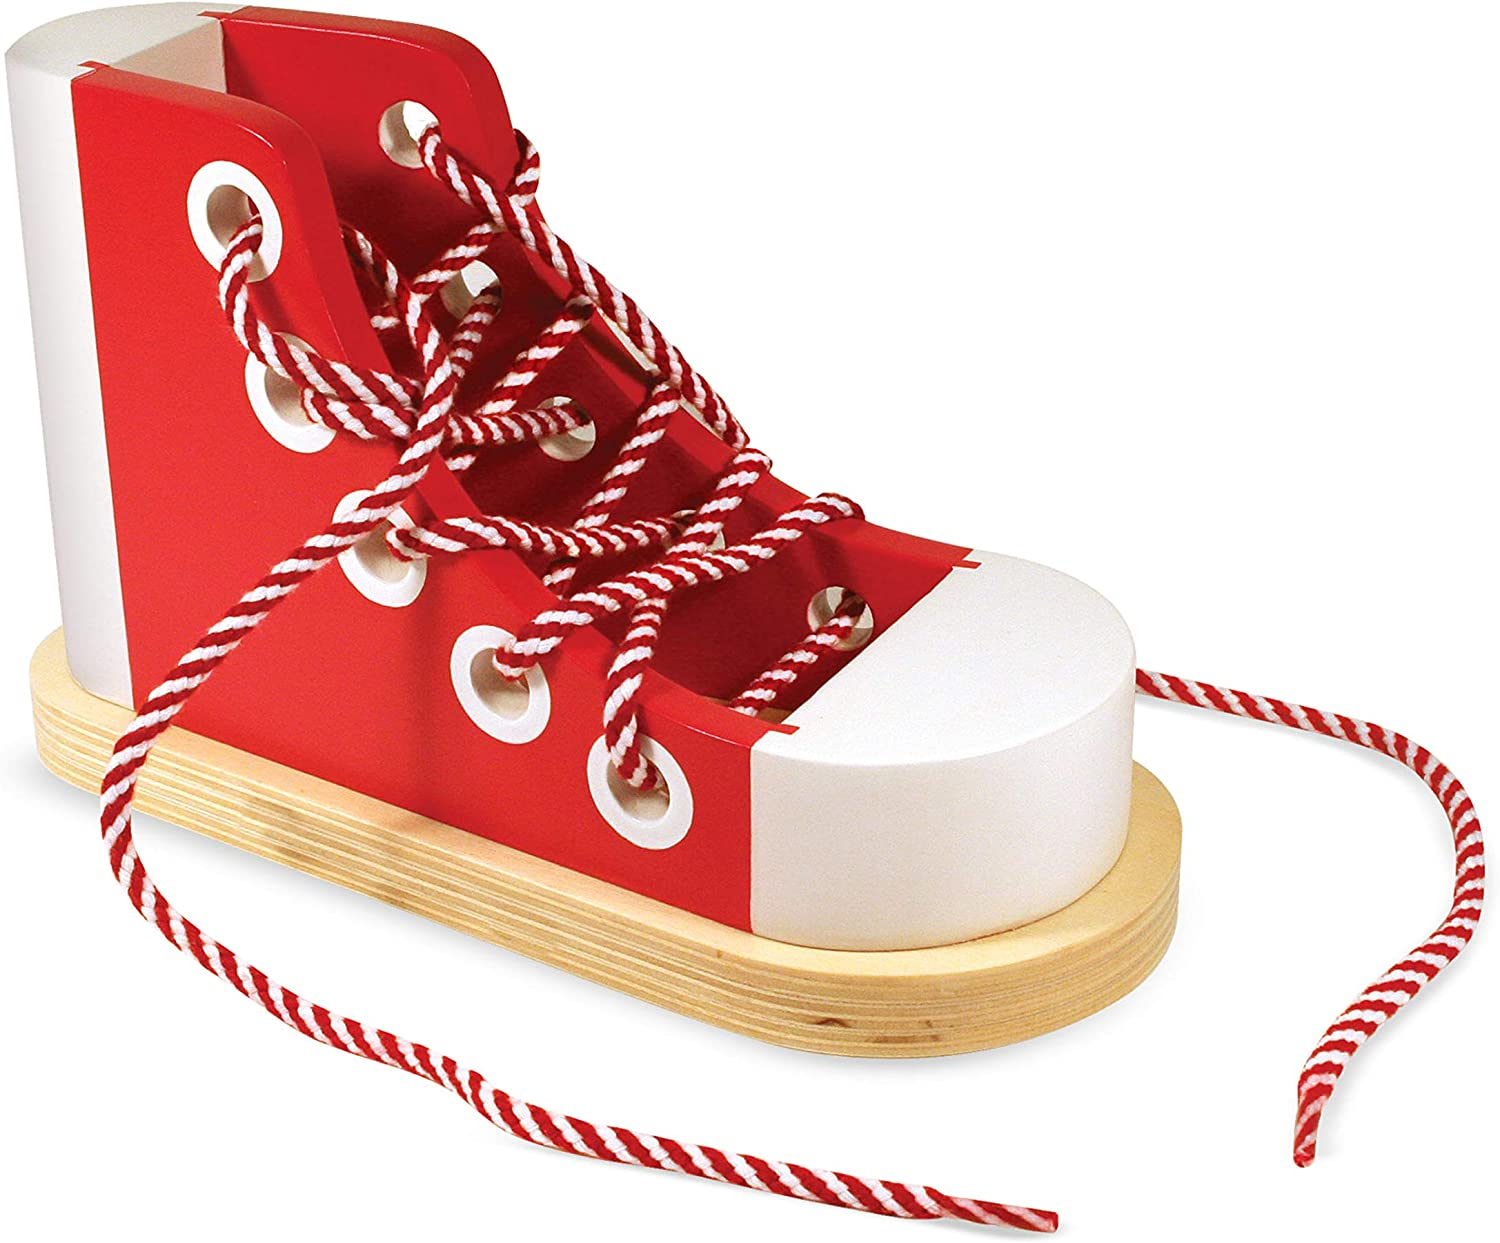 Filles Angry Angels Par Startrite Lacets École Chaussures impact *